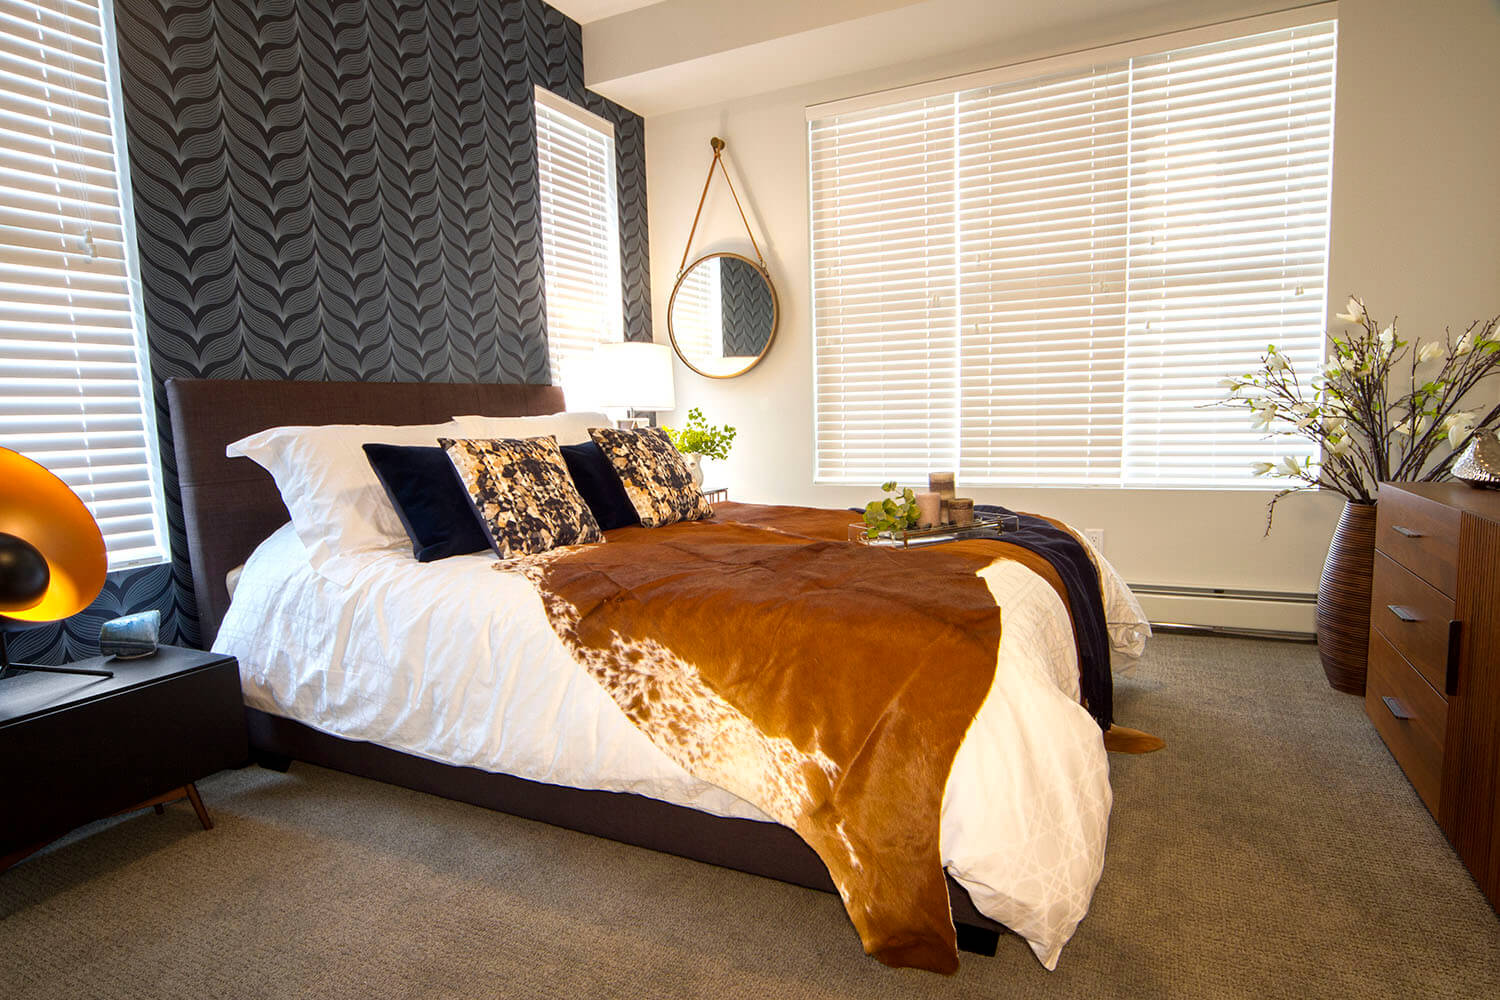 Calgary's Axess condoswith bedroom by Porada Design for Slokker